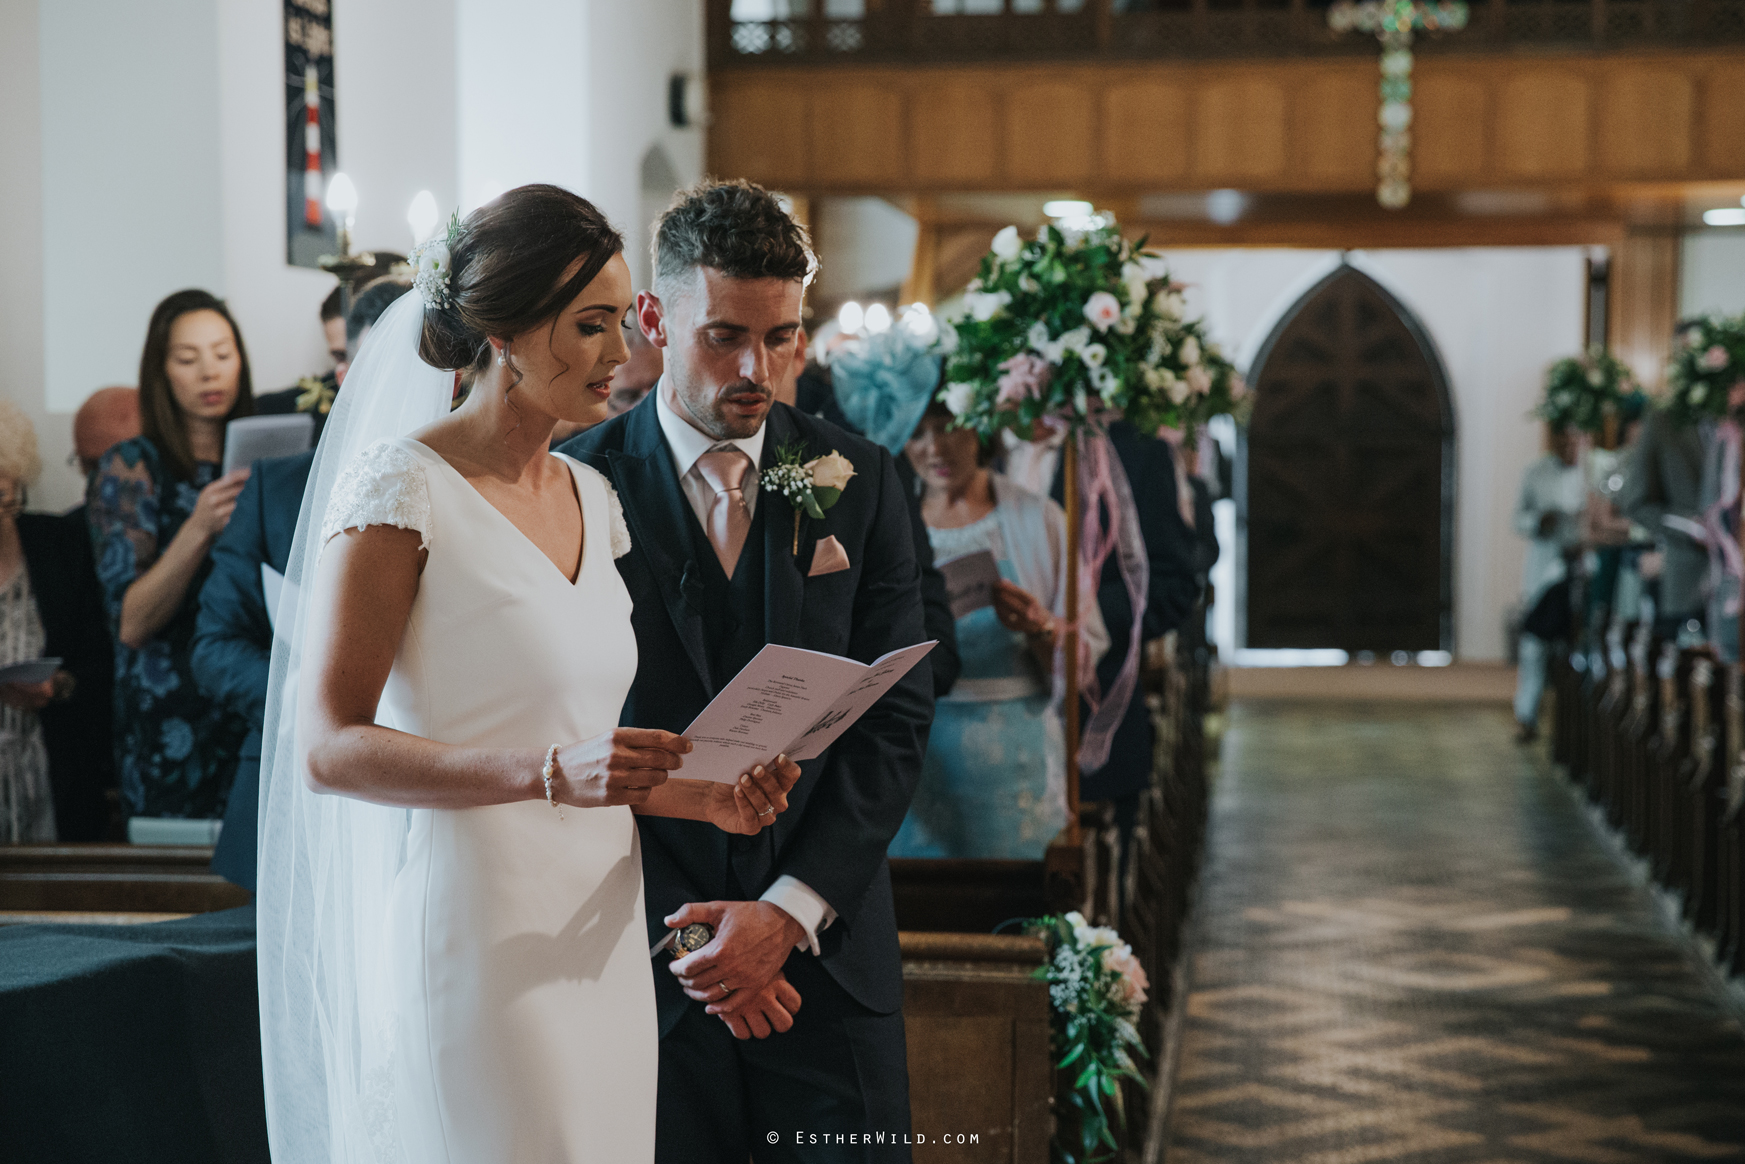 Wootton_Wedding_Copyright_Esther_Wild_Photographer_IMG_1009.jpg